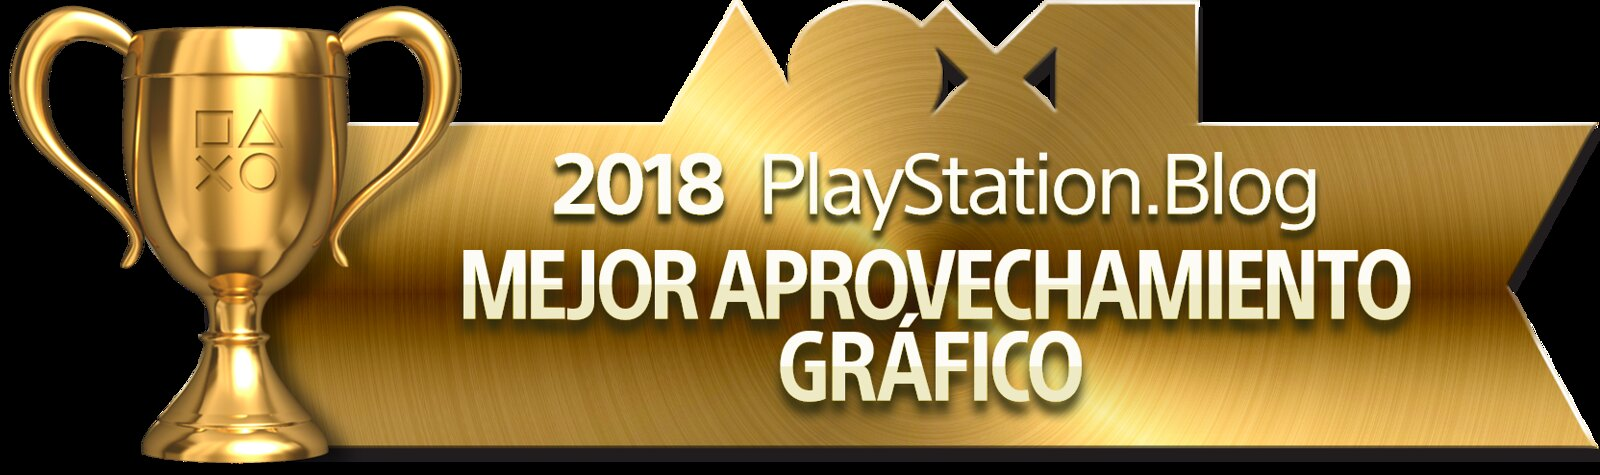 Best Graphical Showcase - Gold